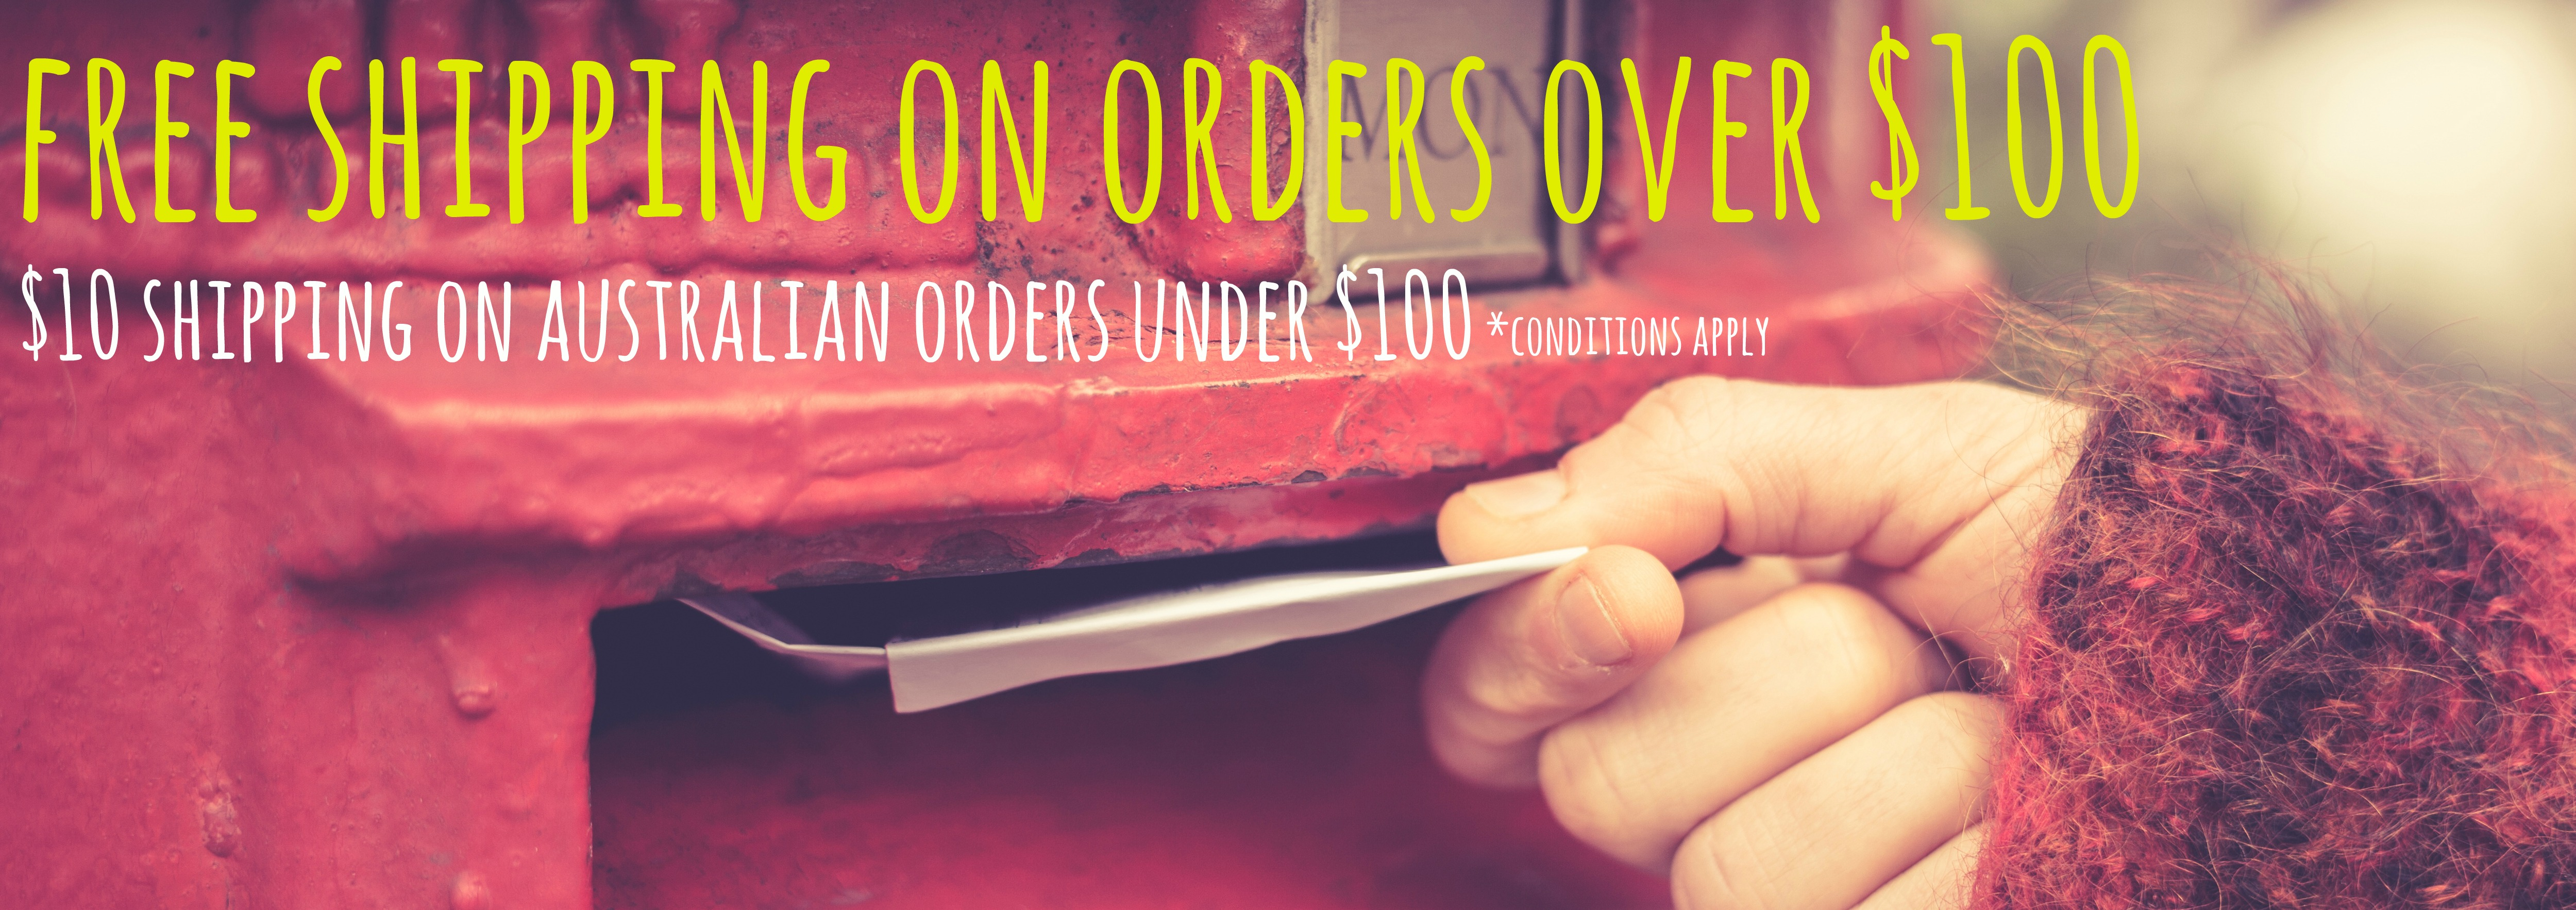 Free Postage on orders over $100